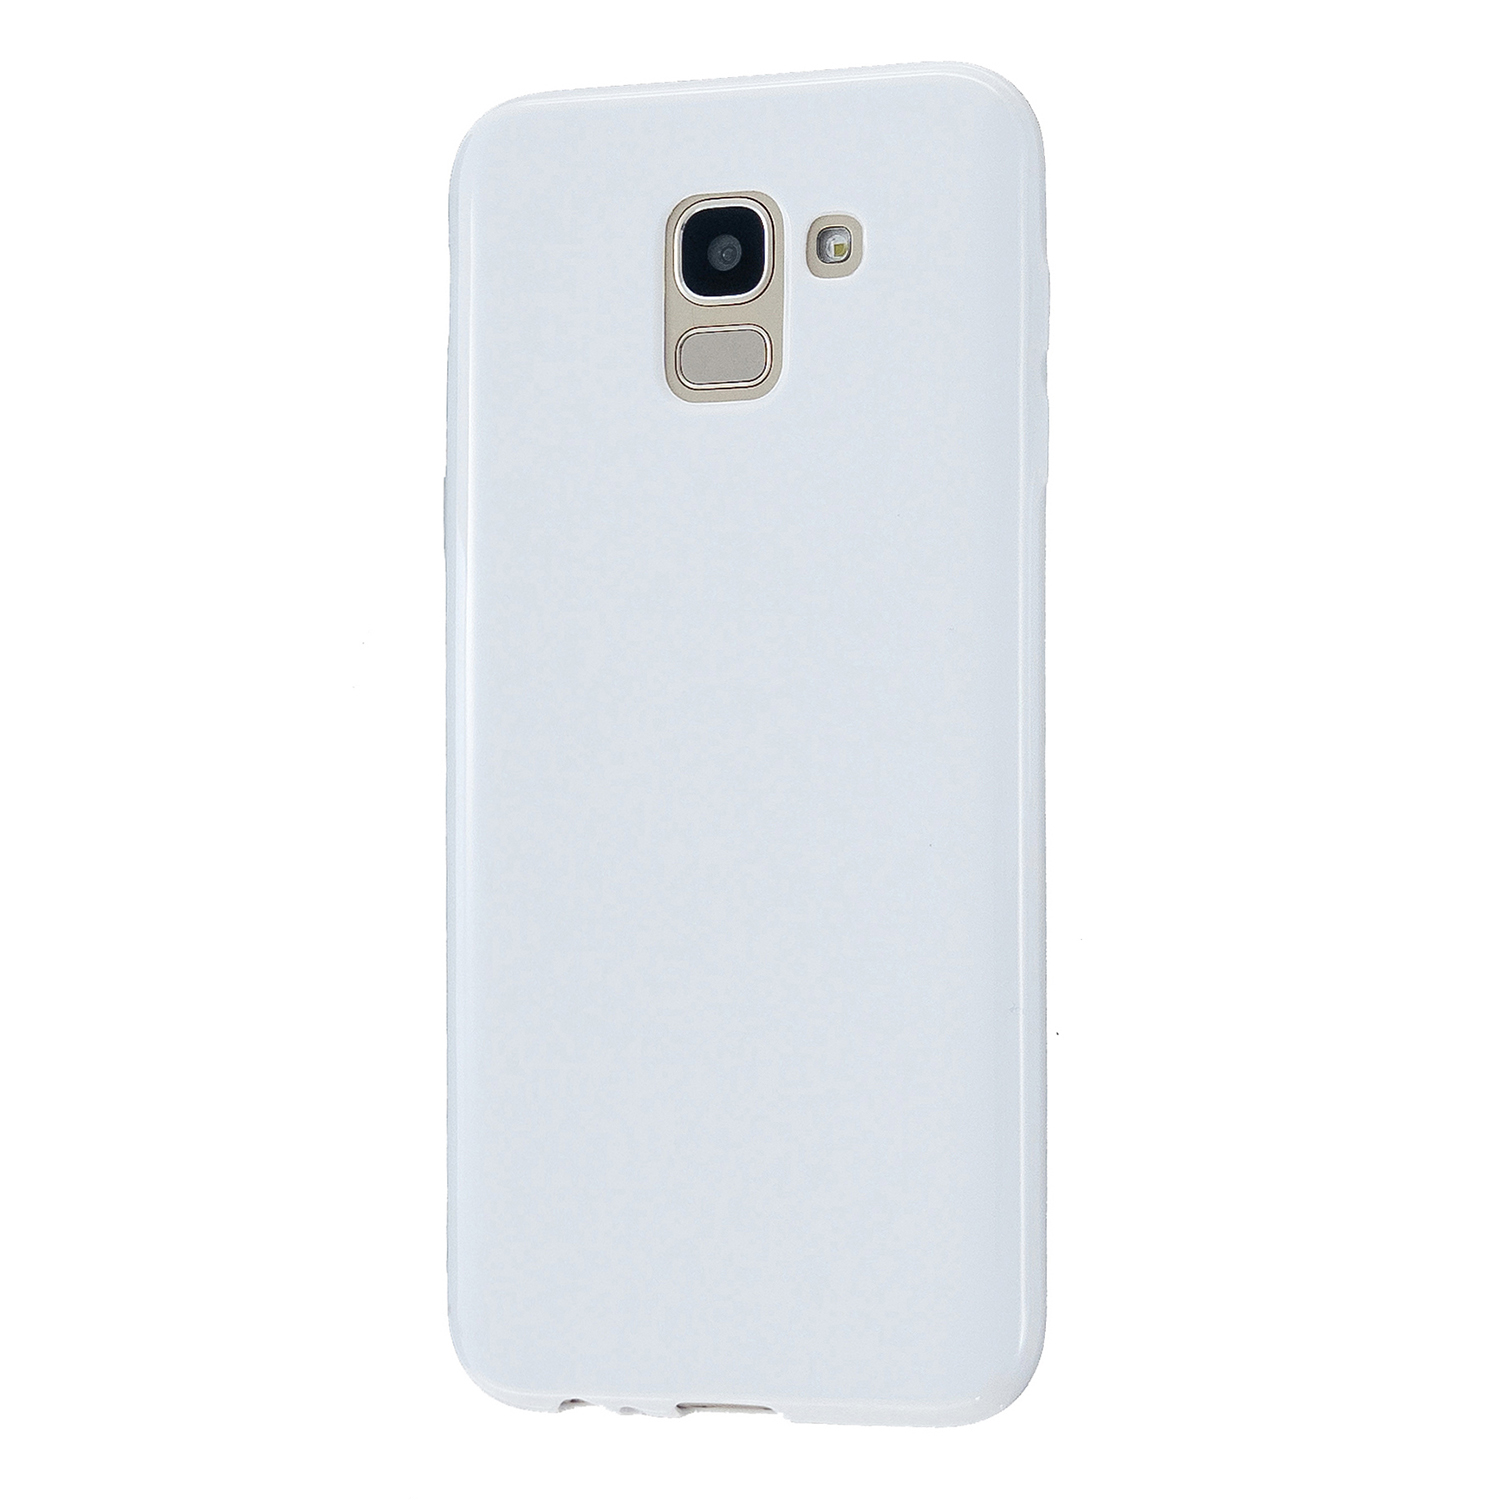 For Samsung A6/A6 Plus 2018 Smartphone Case Soft TPU Precise Cutouts Full Body Protection Mobile Phone Shell Milk white